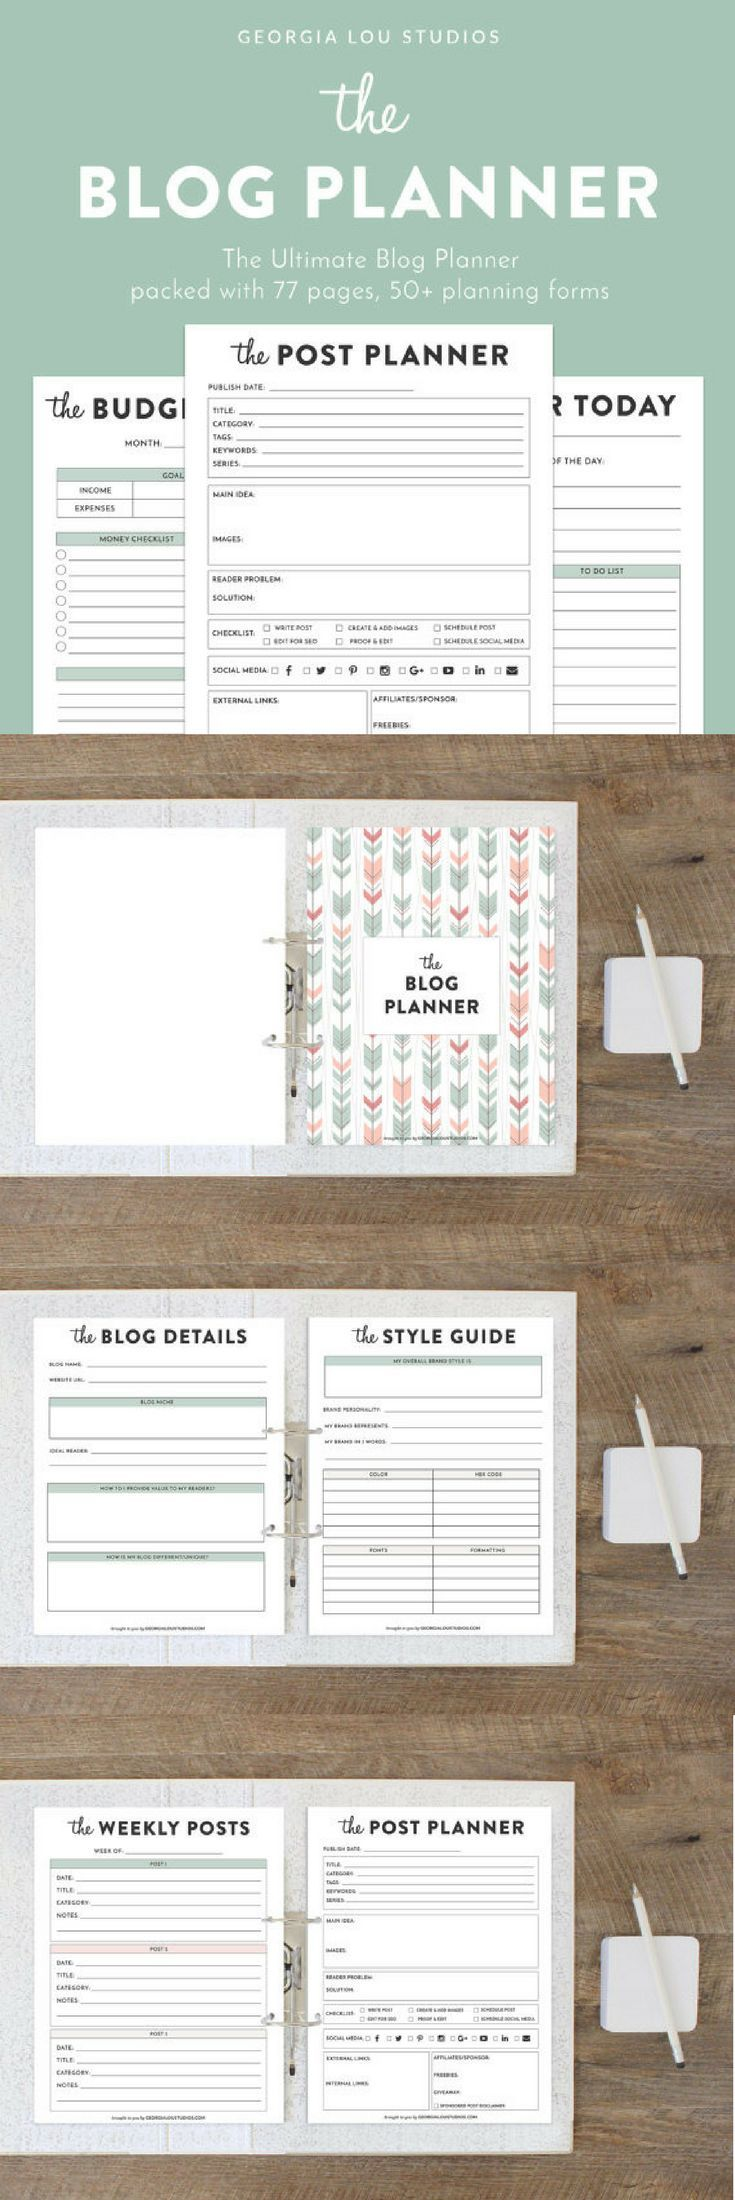 Packed with 77 pages including 50+ forms, this planner has every worksheet you could ever need to get your blog organized and under control. From calendars to finance trackers to post planners and SEO checklists, this planner has all your organizing needs covered. #blog #printable #organize #ad